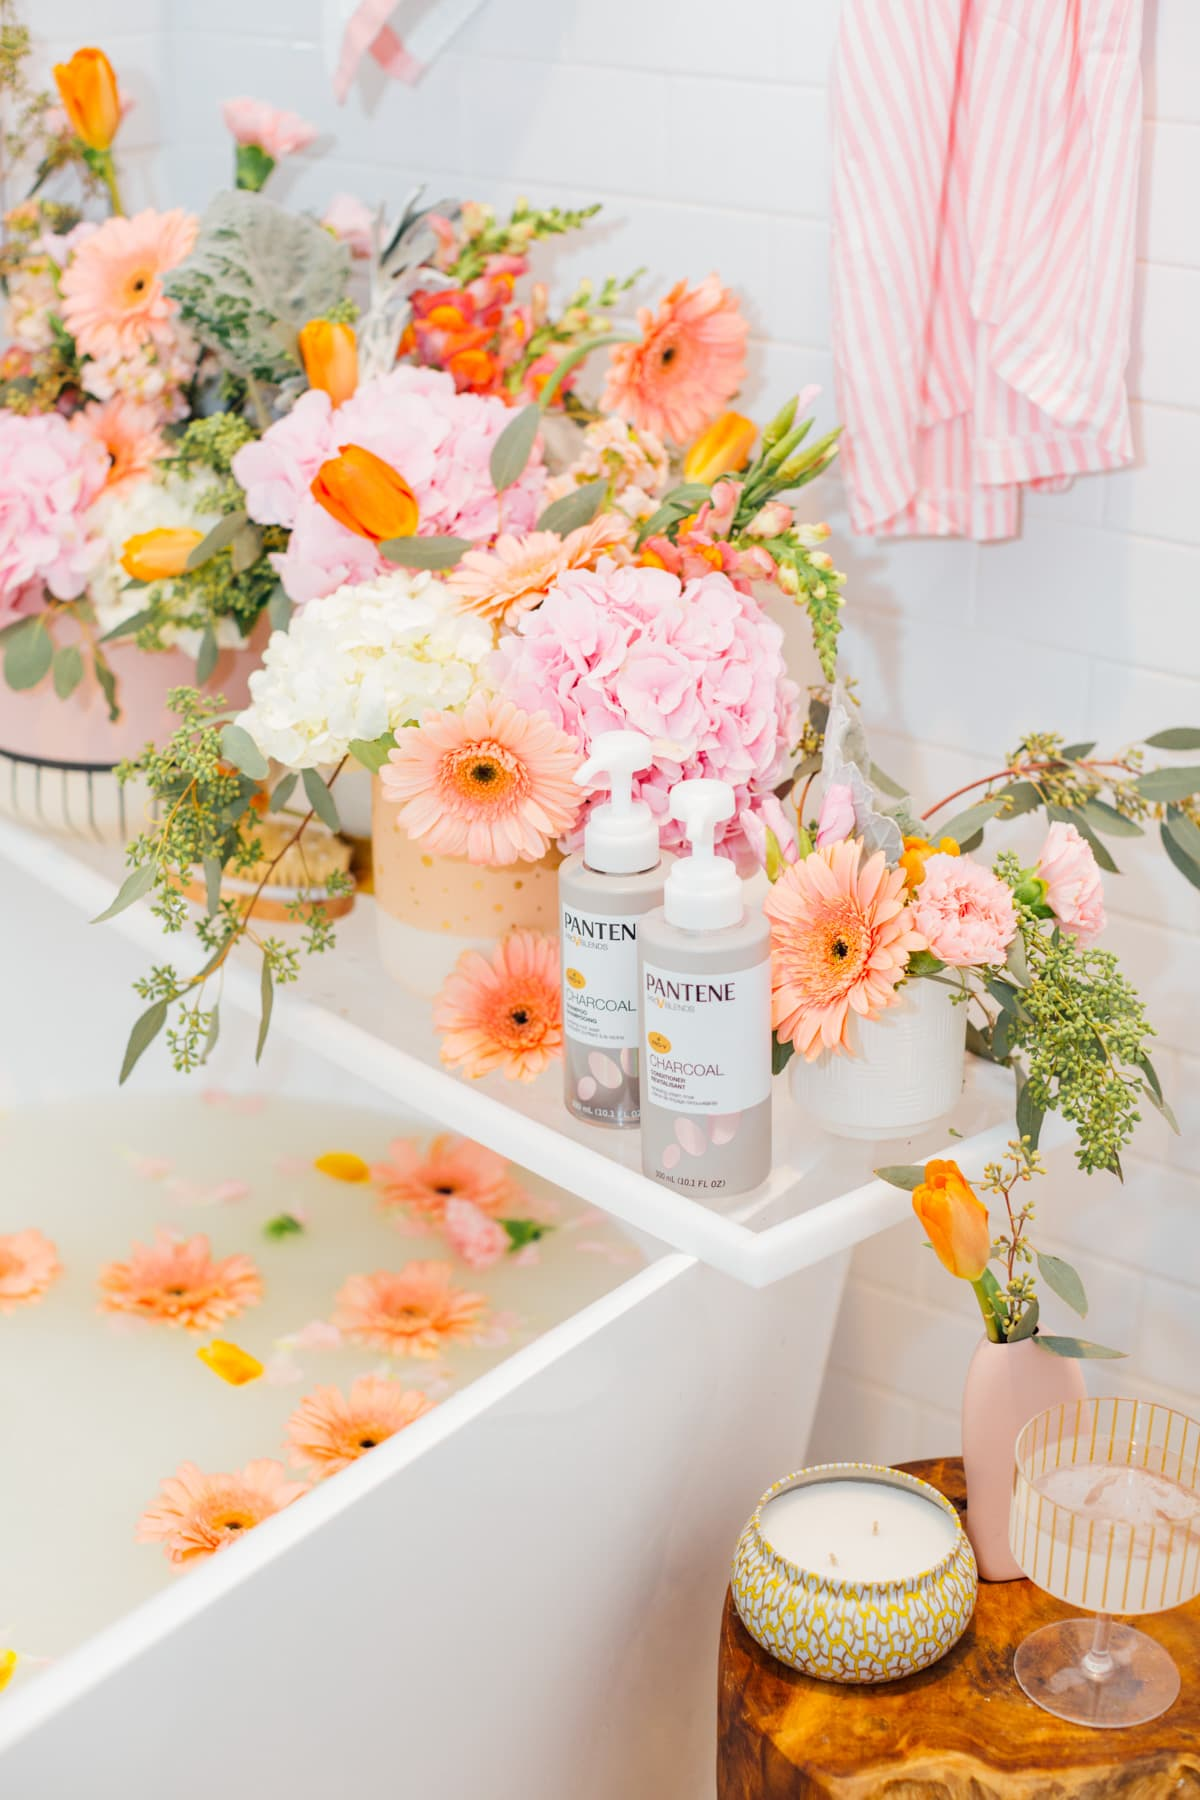 a flower milk bath and pantene charcoal shampoo - My Easy Self-Care Tips for Feeling Confident in Yourself (Especially After Baby) - by top Houston lifestyle blogger Ashley Rose of Sugar and Cloth #beauty #tips #selfcare #hair #hairstyles #florals #flowers #showers